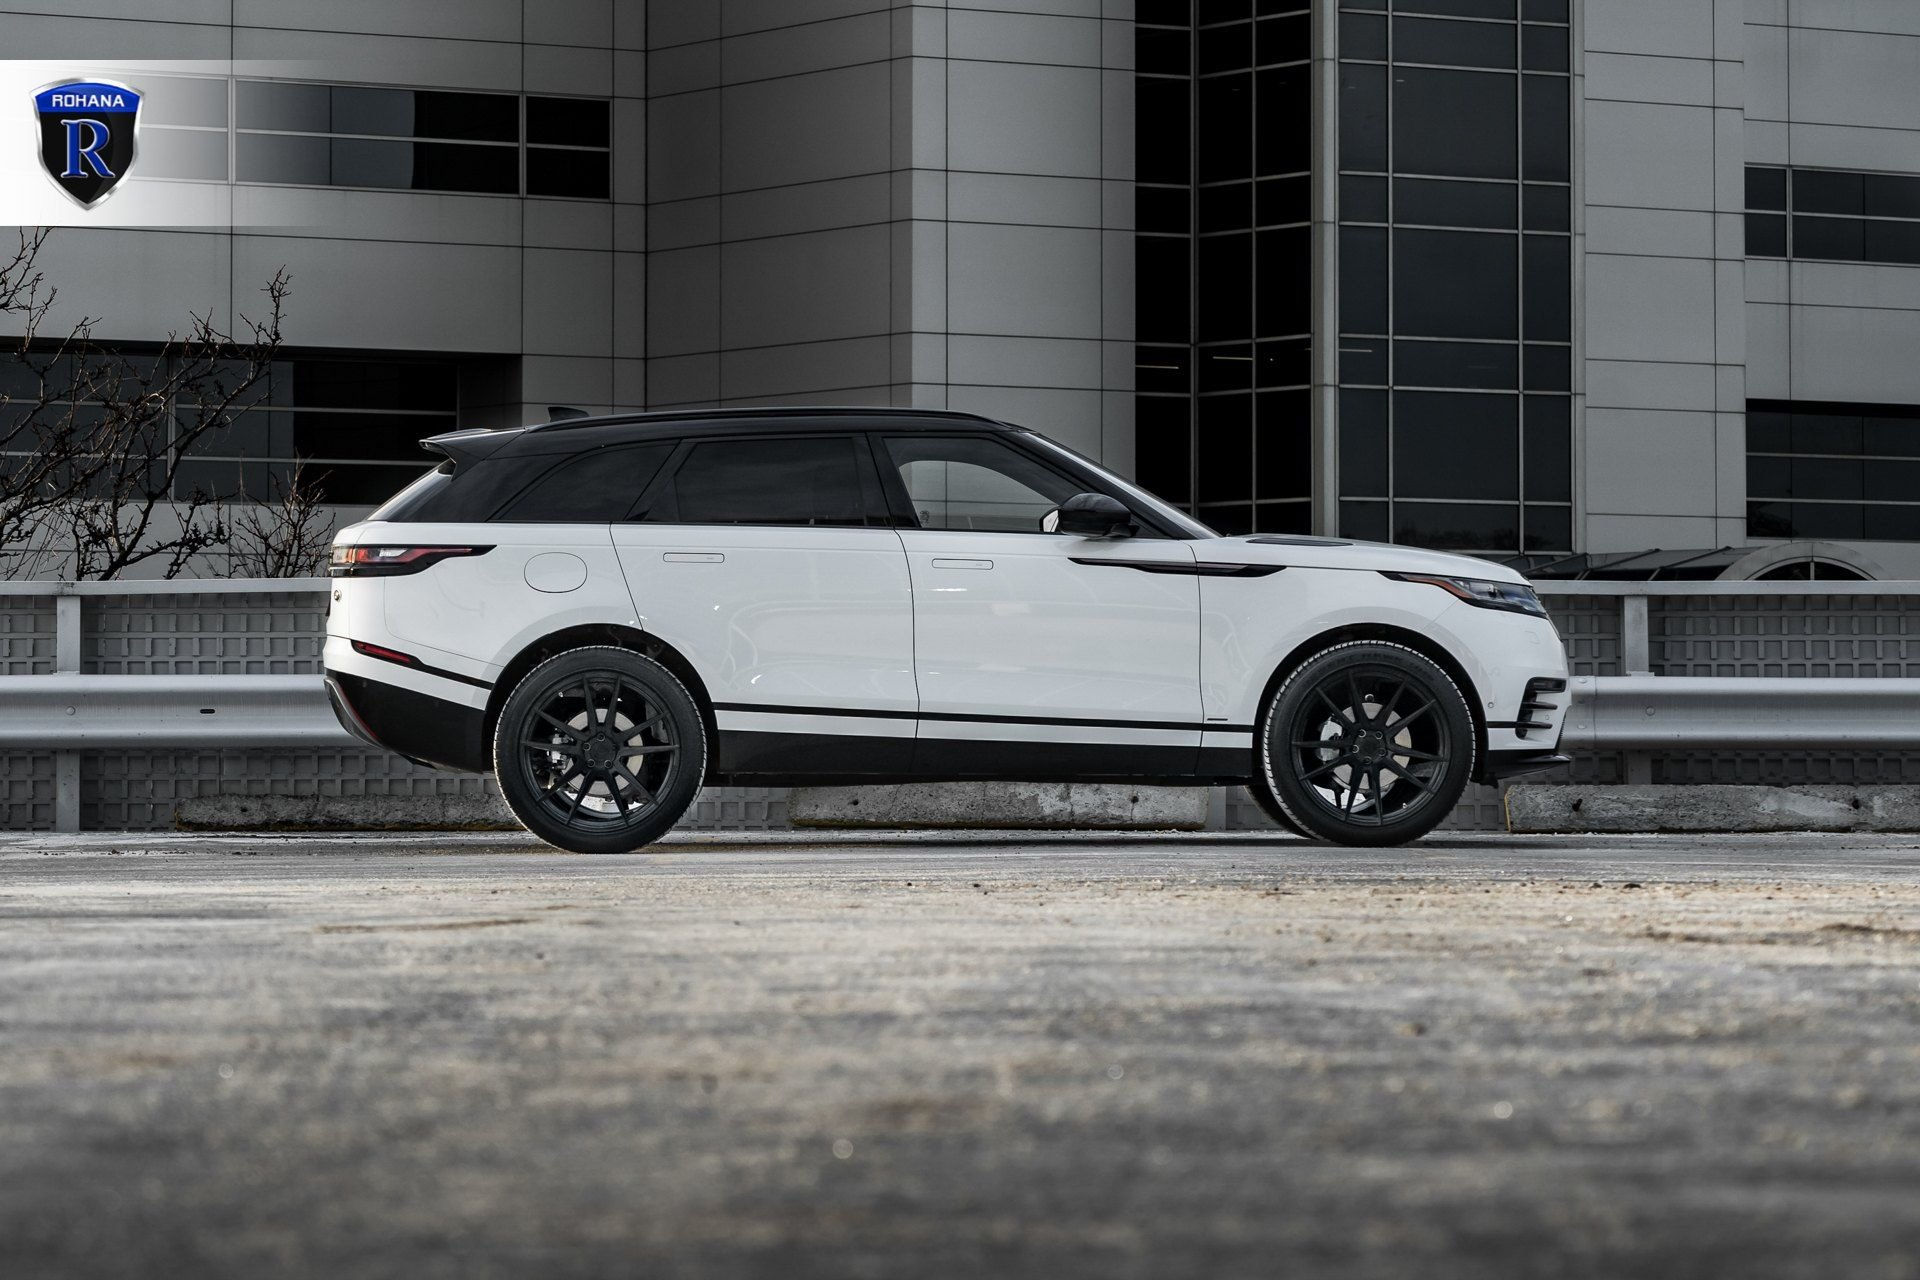 New 2019 Land Rover-Range Rover Velar D180 S Range Rover Velar D180 S for sale $56,200 at M and V Leasing in Brooklyn NY 11223 1